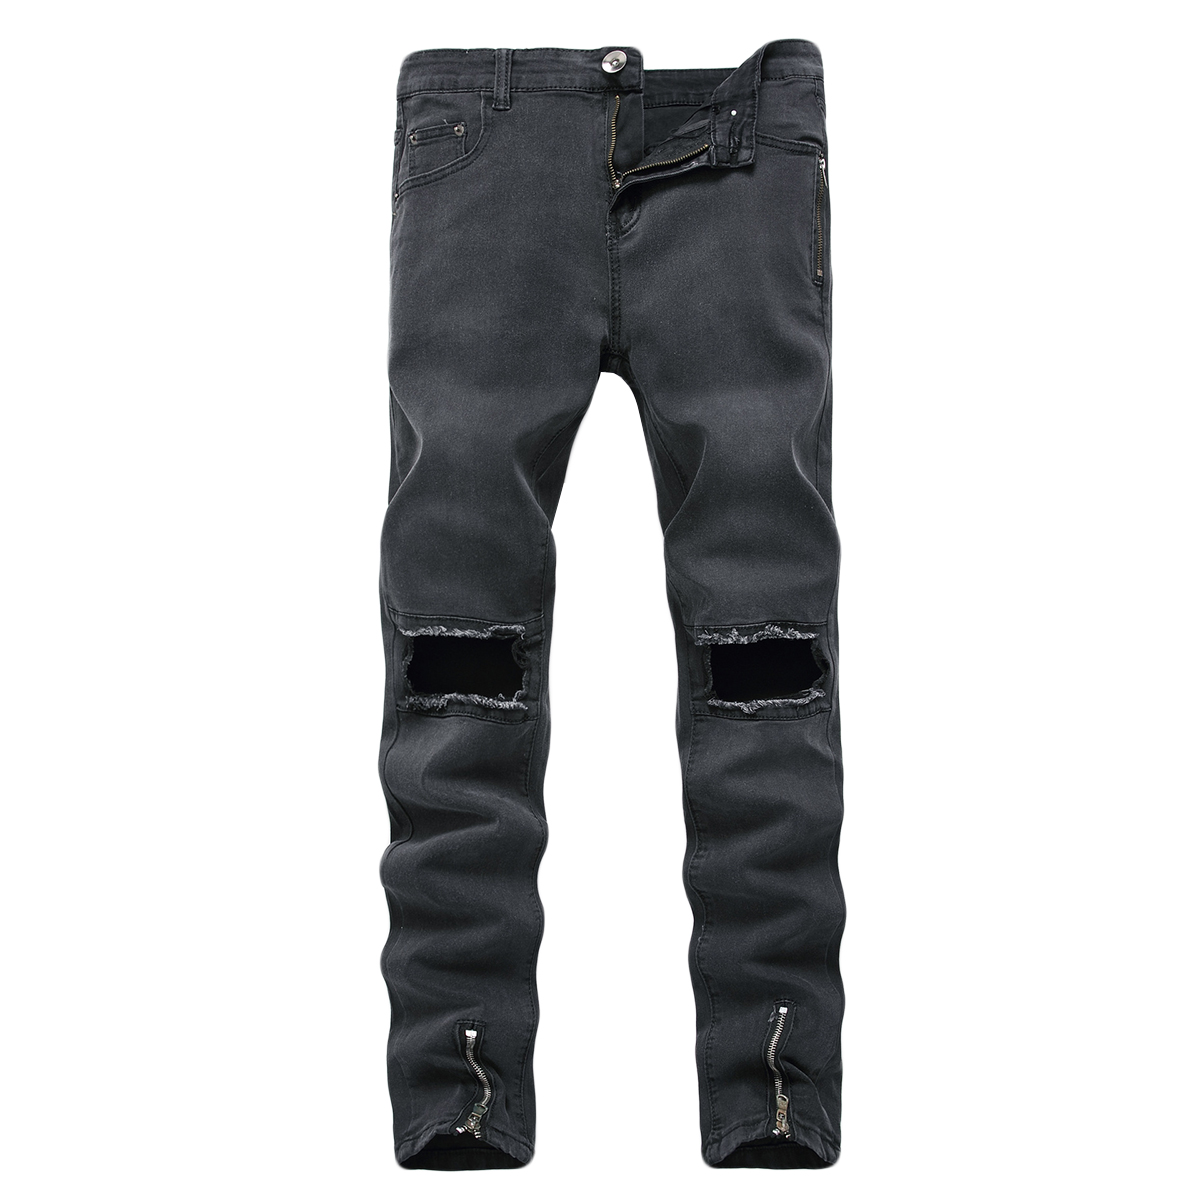 55da369dc Men's Denim Ripped Distressed Jeans Washed Stretchy Tapered Leg Pants with  Holes